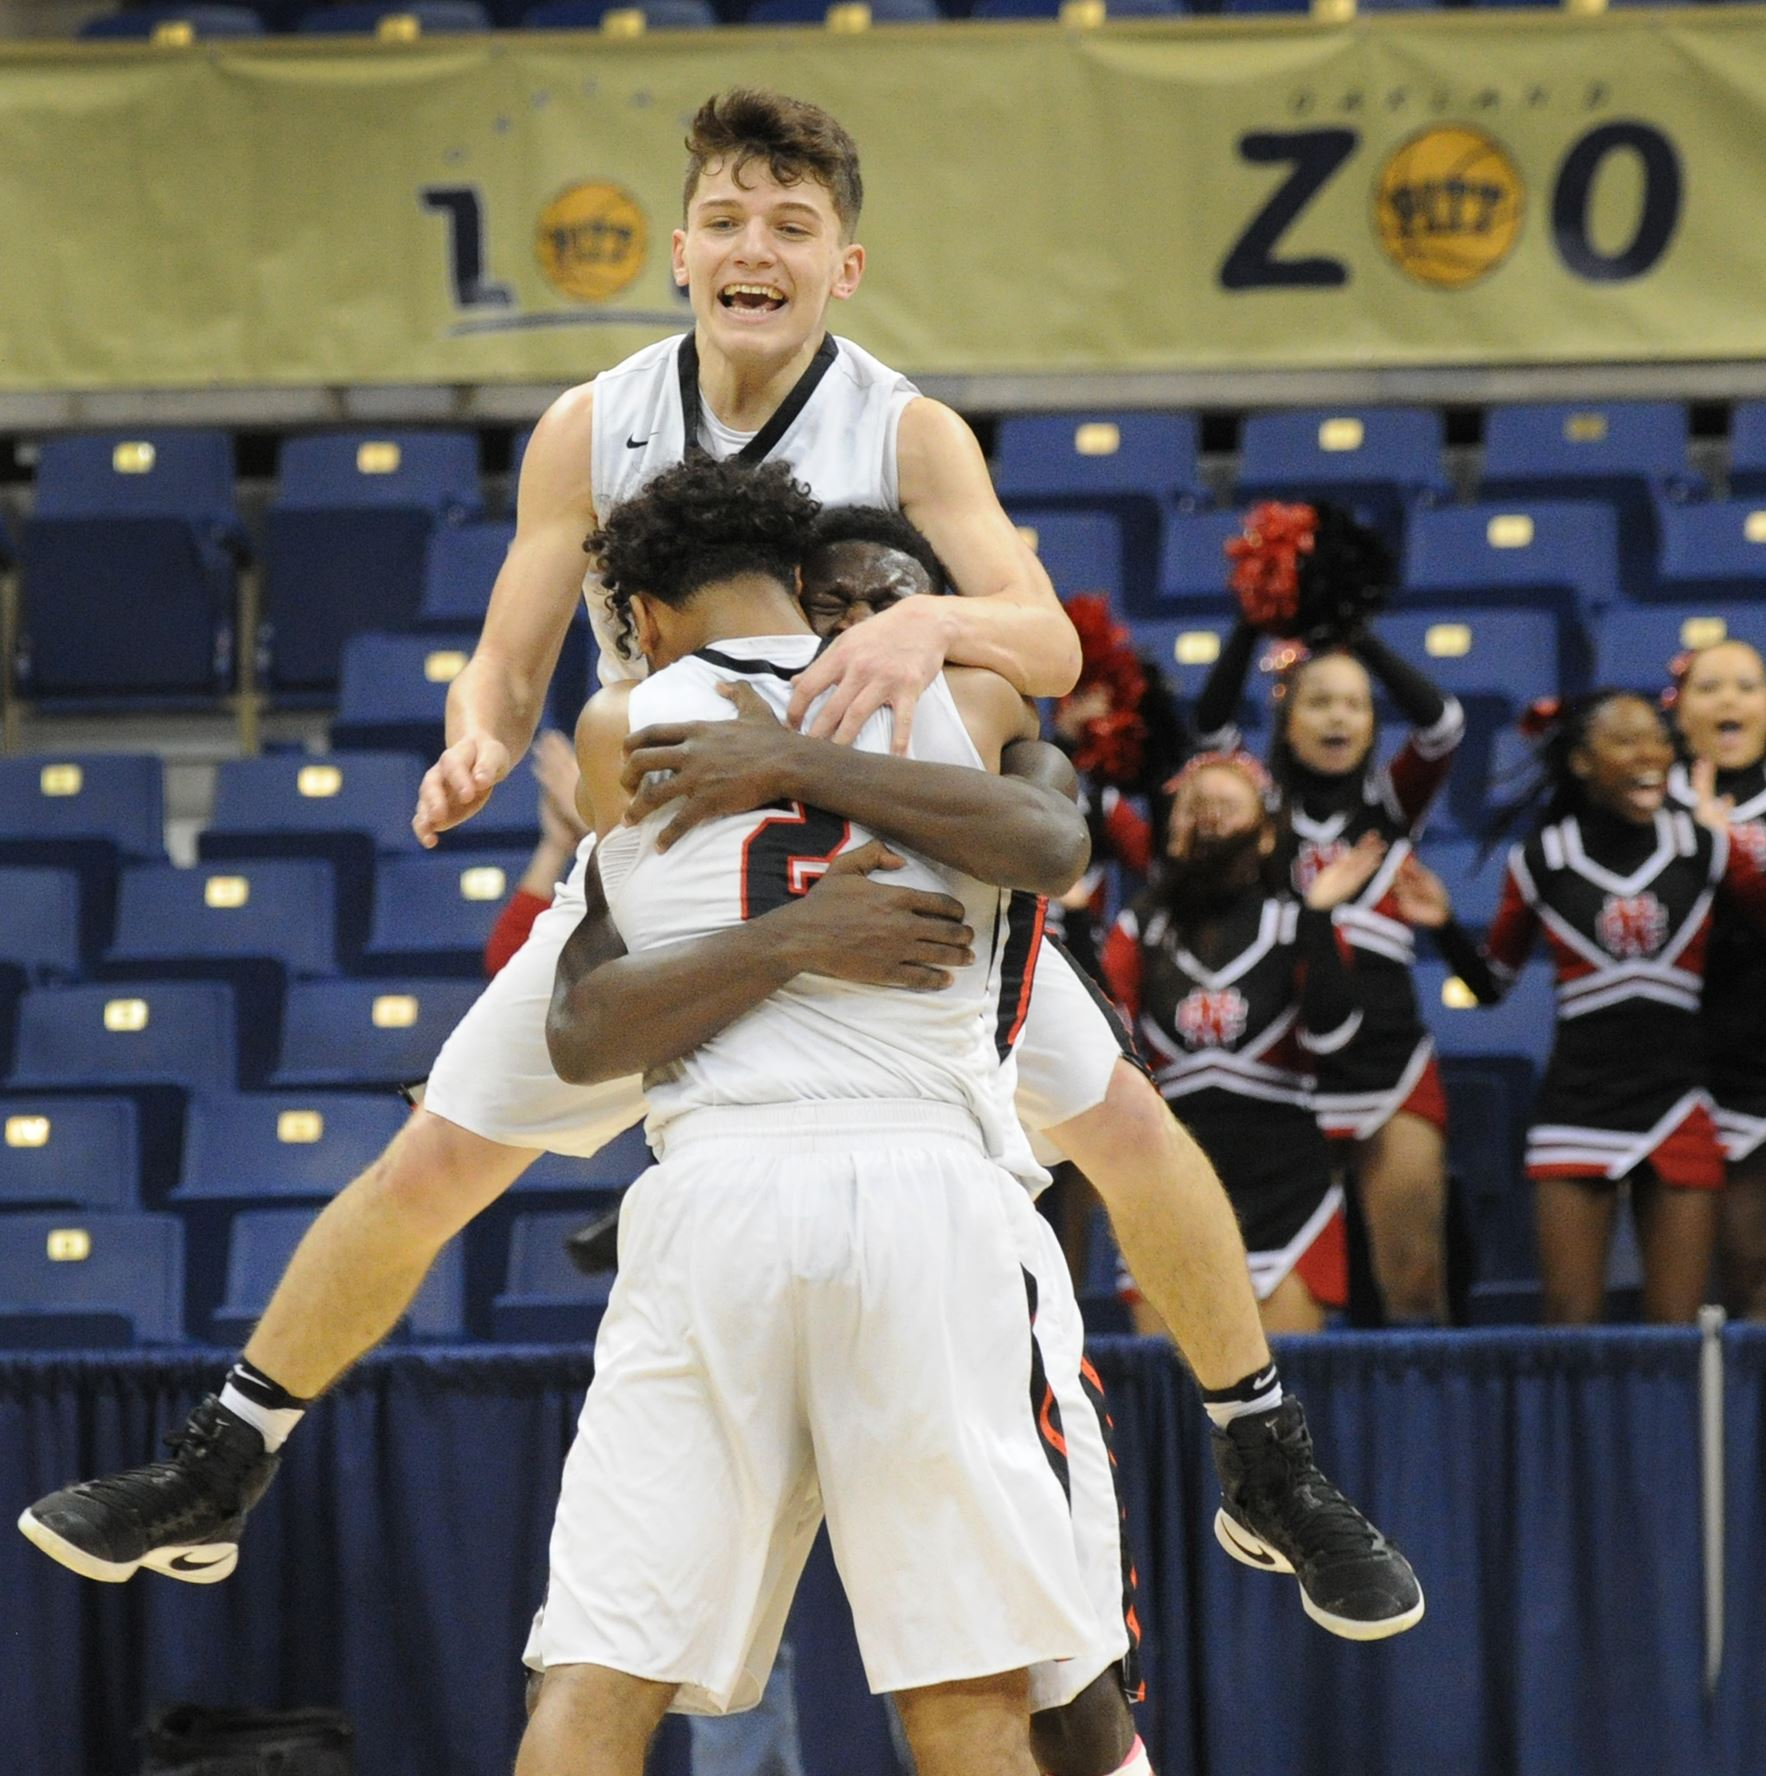 Top-seeded New Castle Pulls Away From Quaker Valley To Win